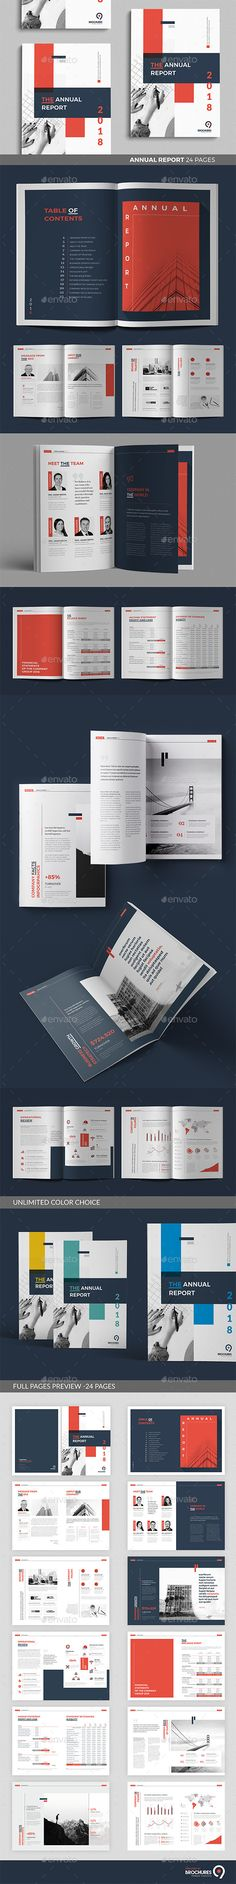 Annual Report Brochure Template InDesign INDD - 24 Custom Layout Pages, A4 and US Letter Size